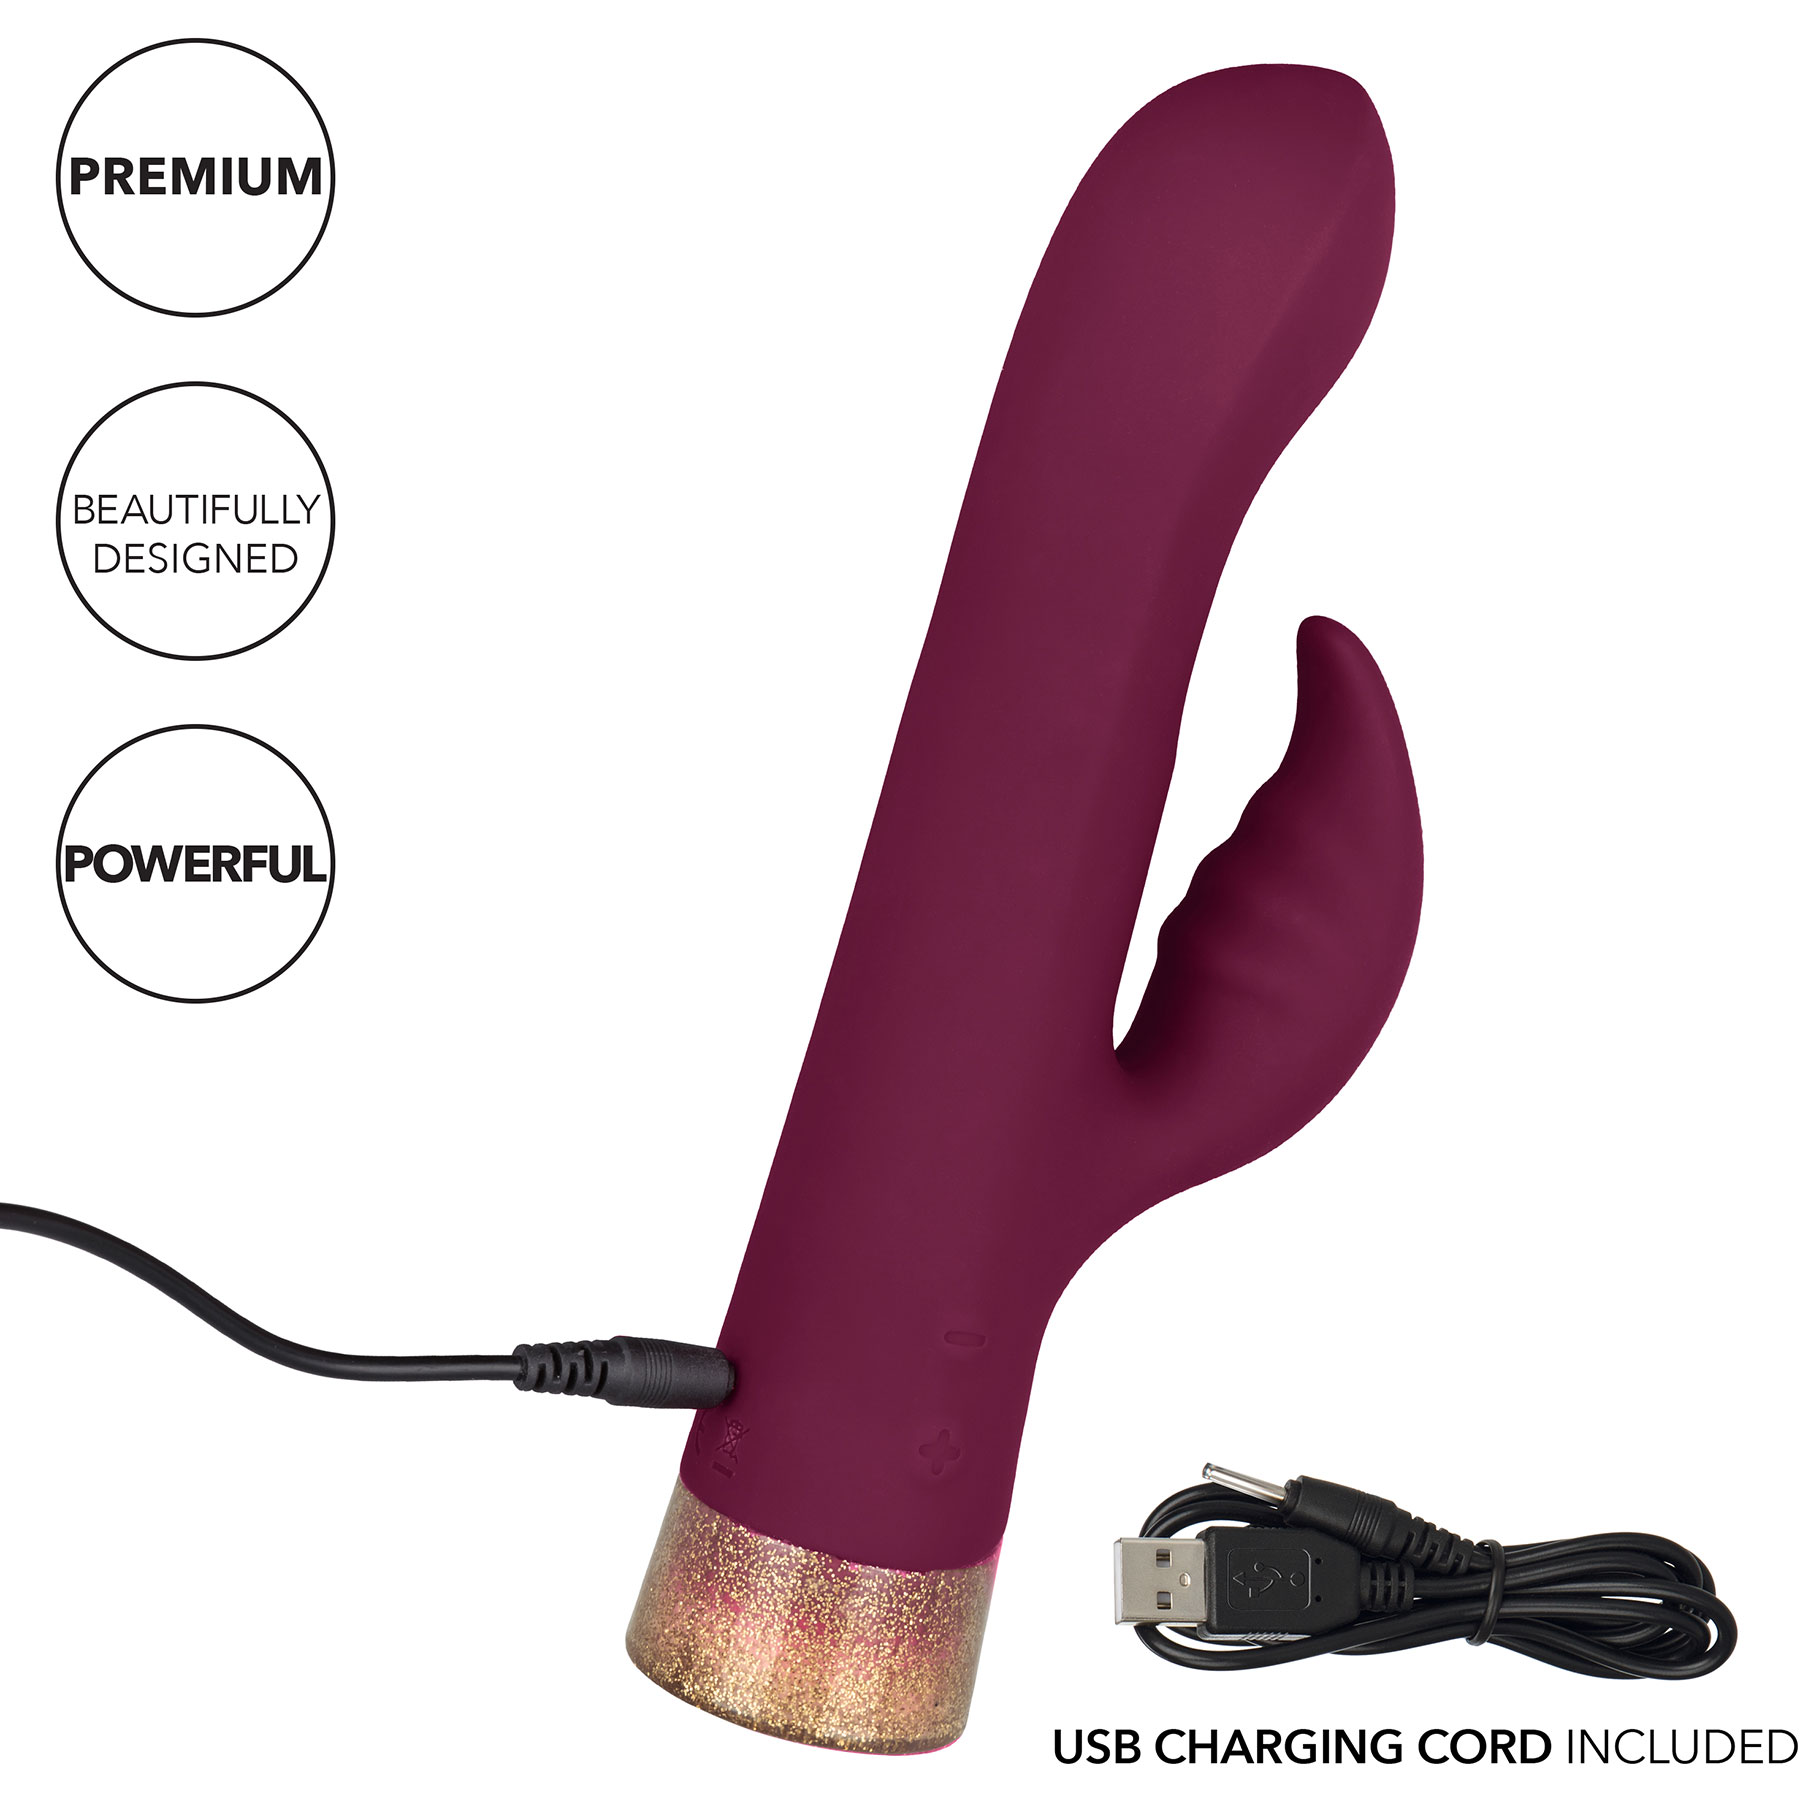 Starstruck Affair Waterproof Rechargeable Silicone Rabbit Style Vibrator - Charging